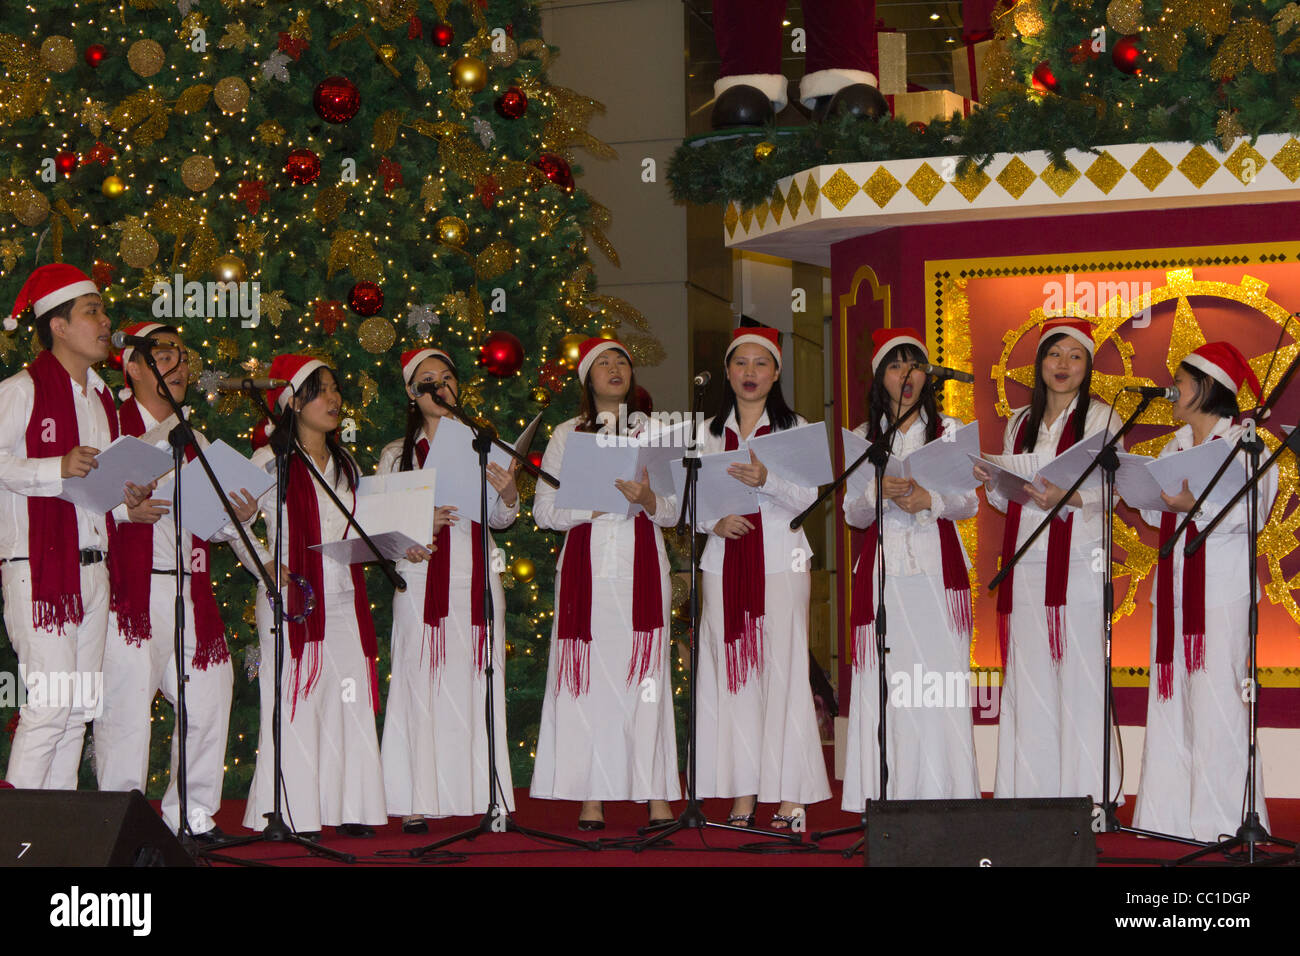 choir singing Christmas songs in Suria Mall, Kuala Lumpur City Centre, Malaysia - Stock Image